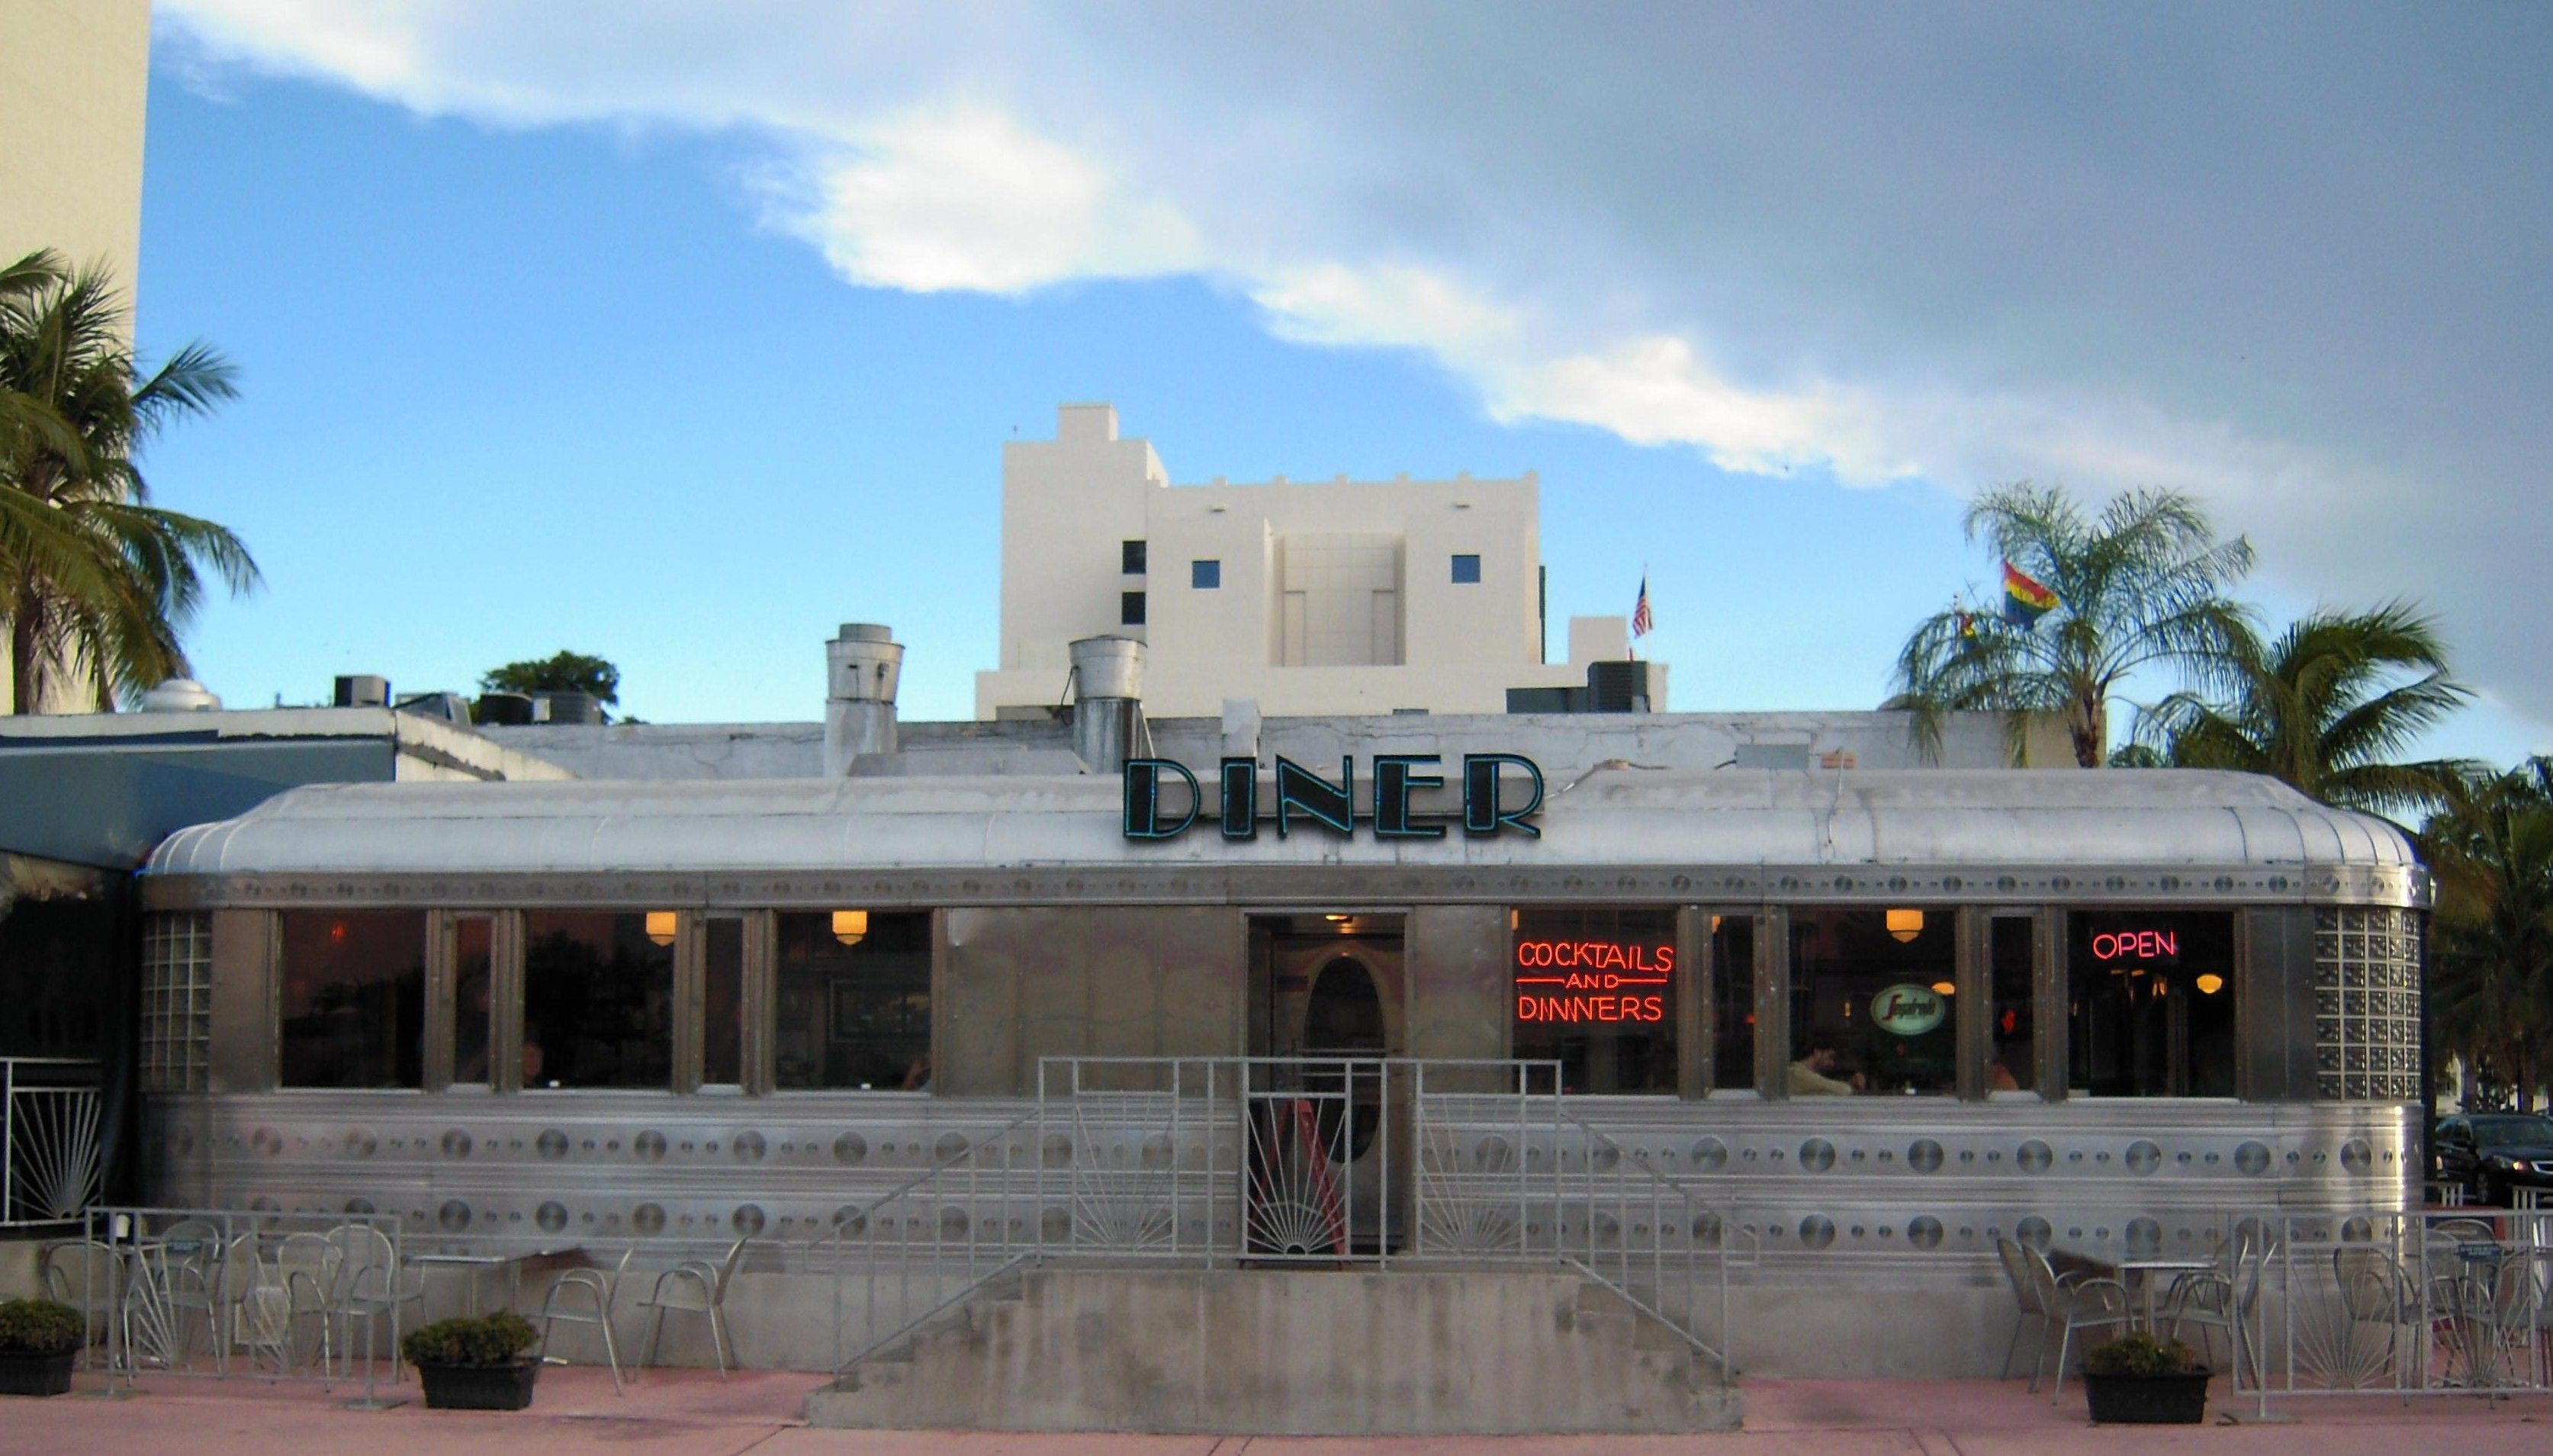 Do You Love Classic American Diners 11th Street Diner South Beach Miami